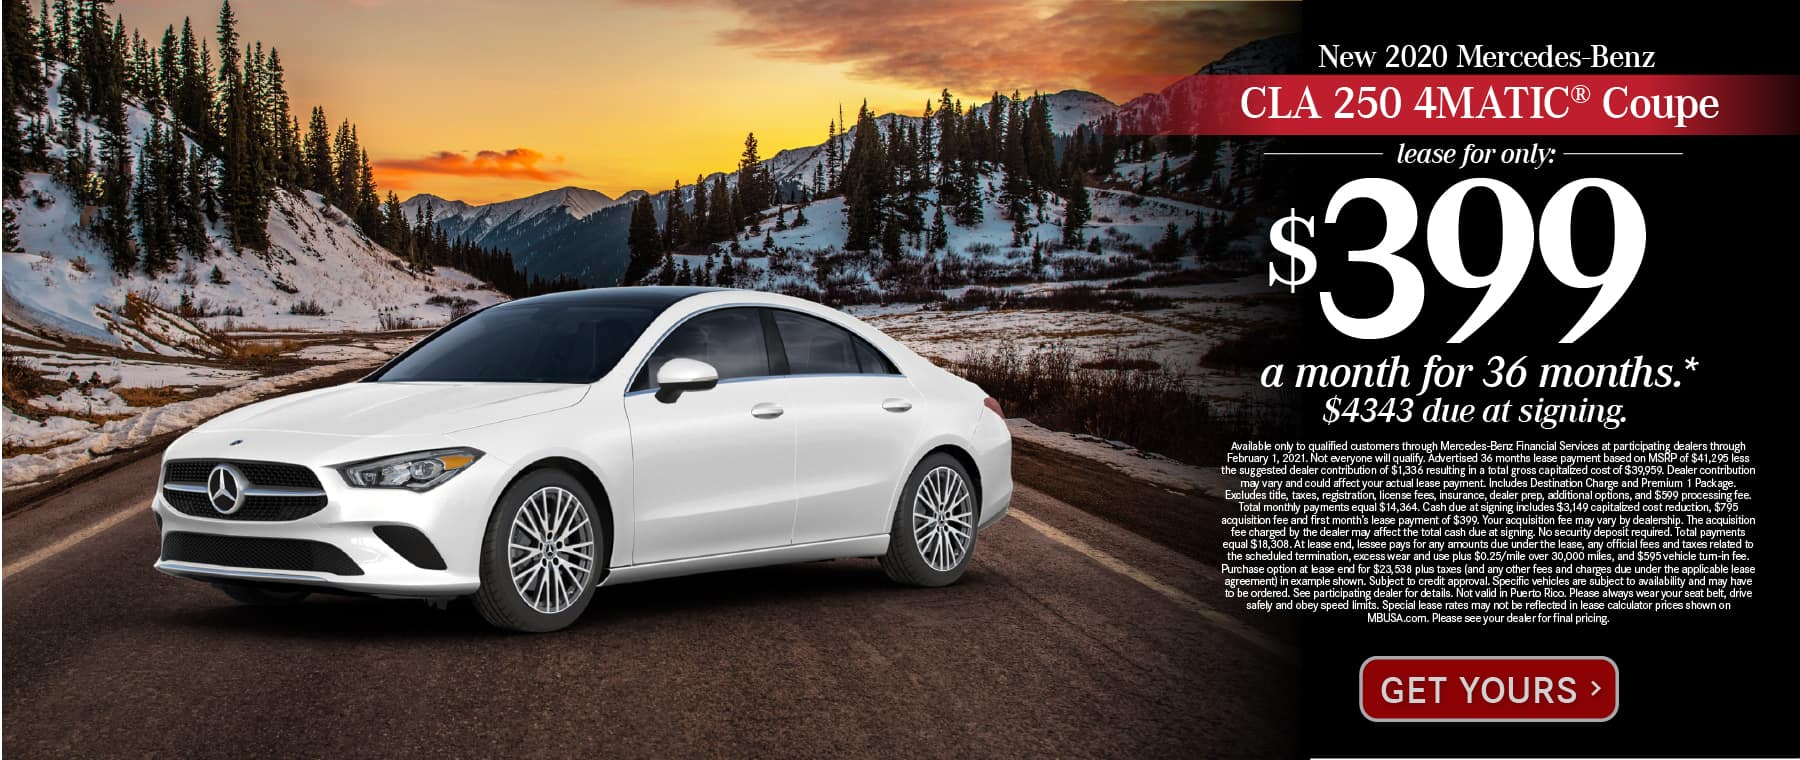 New 2021 Mercedes-Benz CLA 250 4MATIC® Lease for only: $399 a month for 36 months. $4343 due at signing. Get Yours.